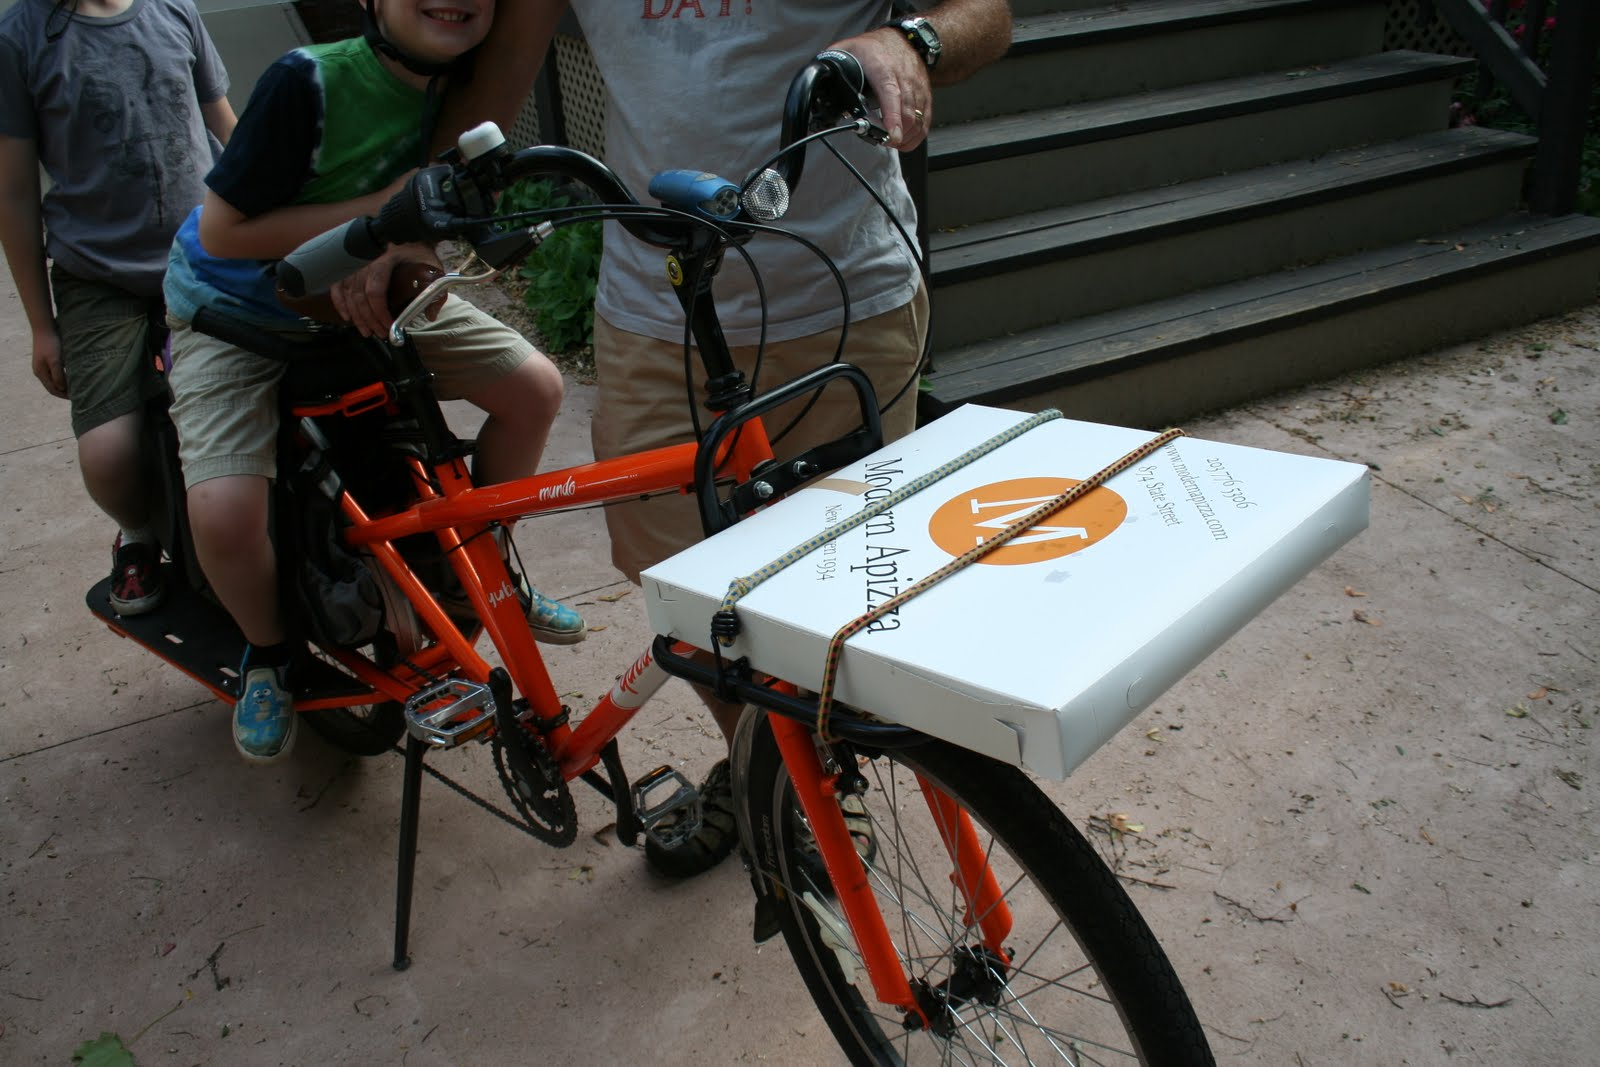 full hands: pizza delivery bike